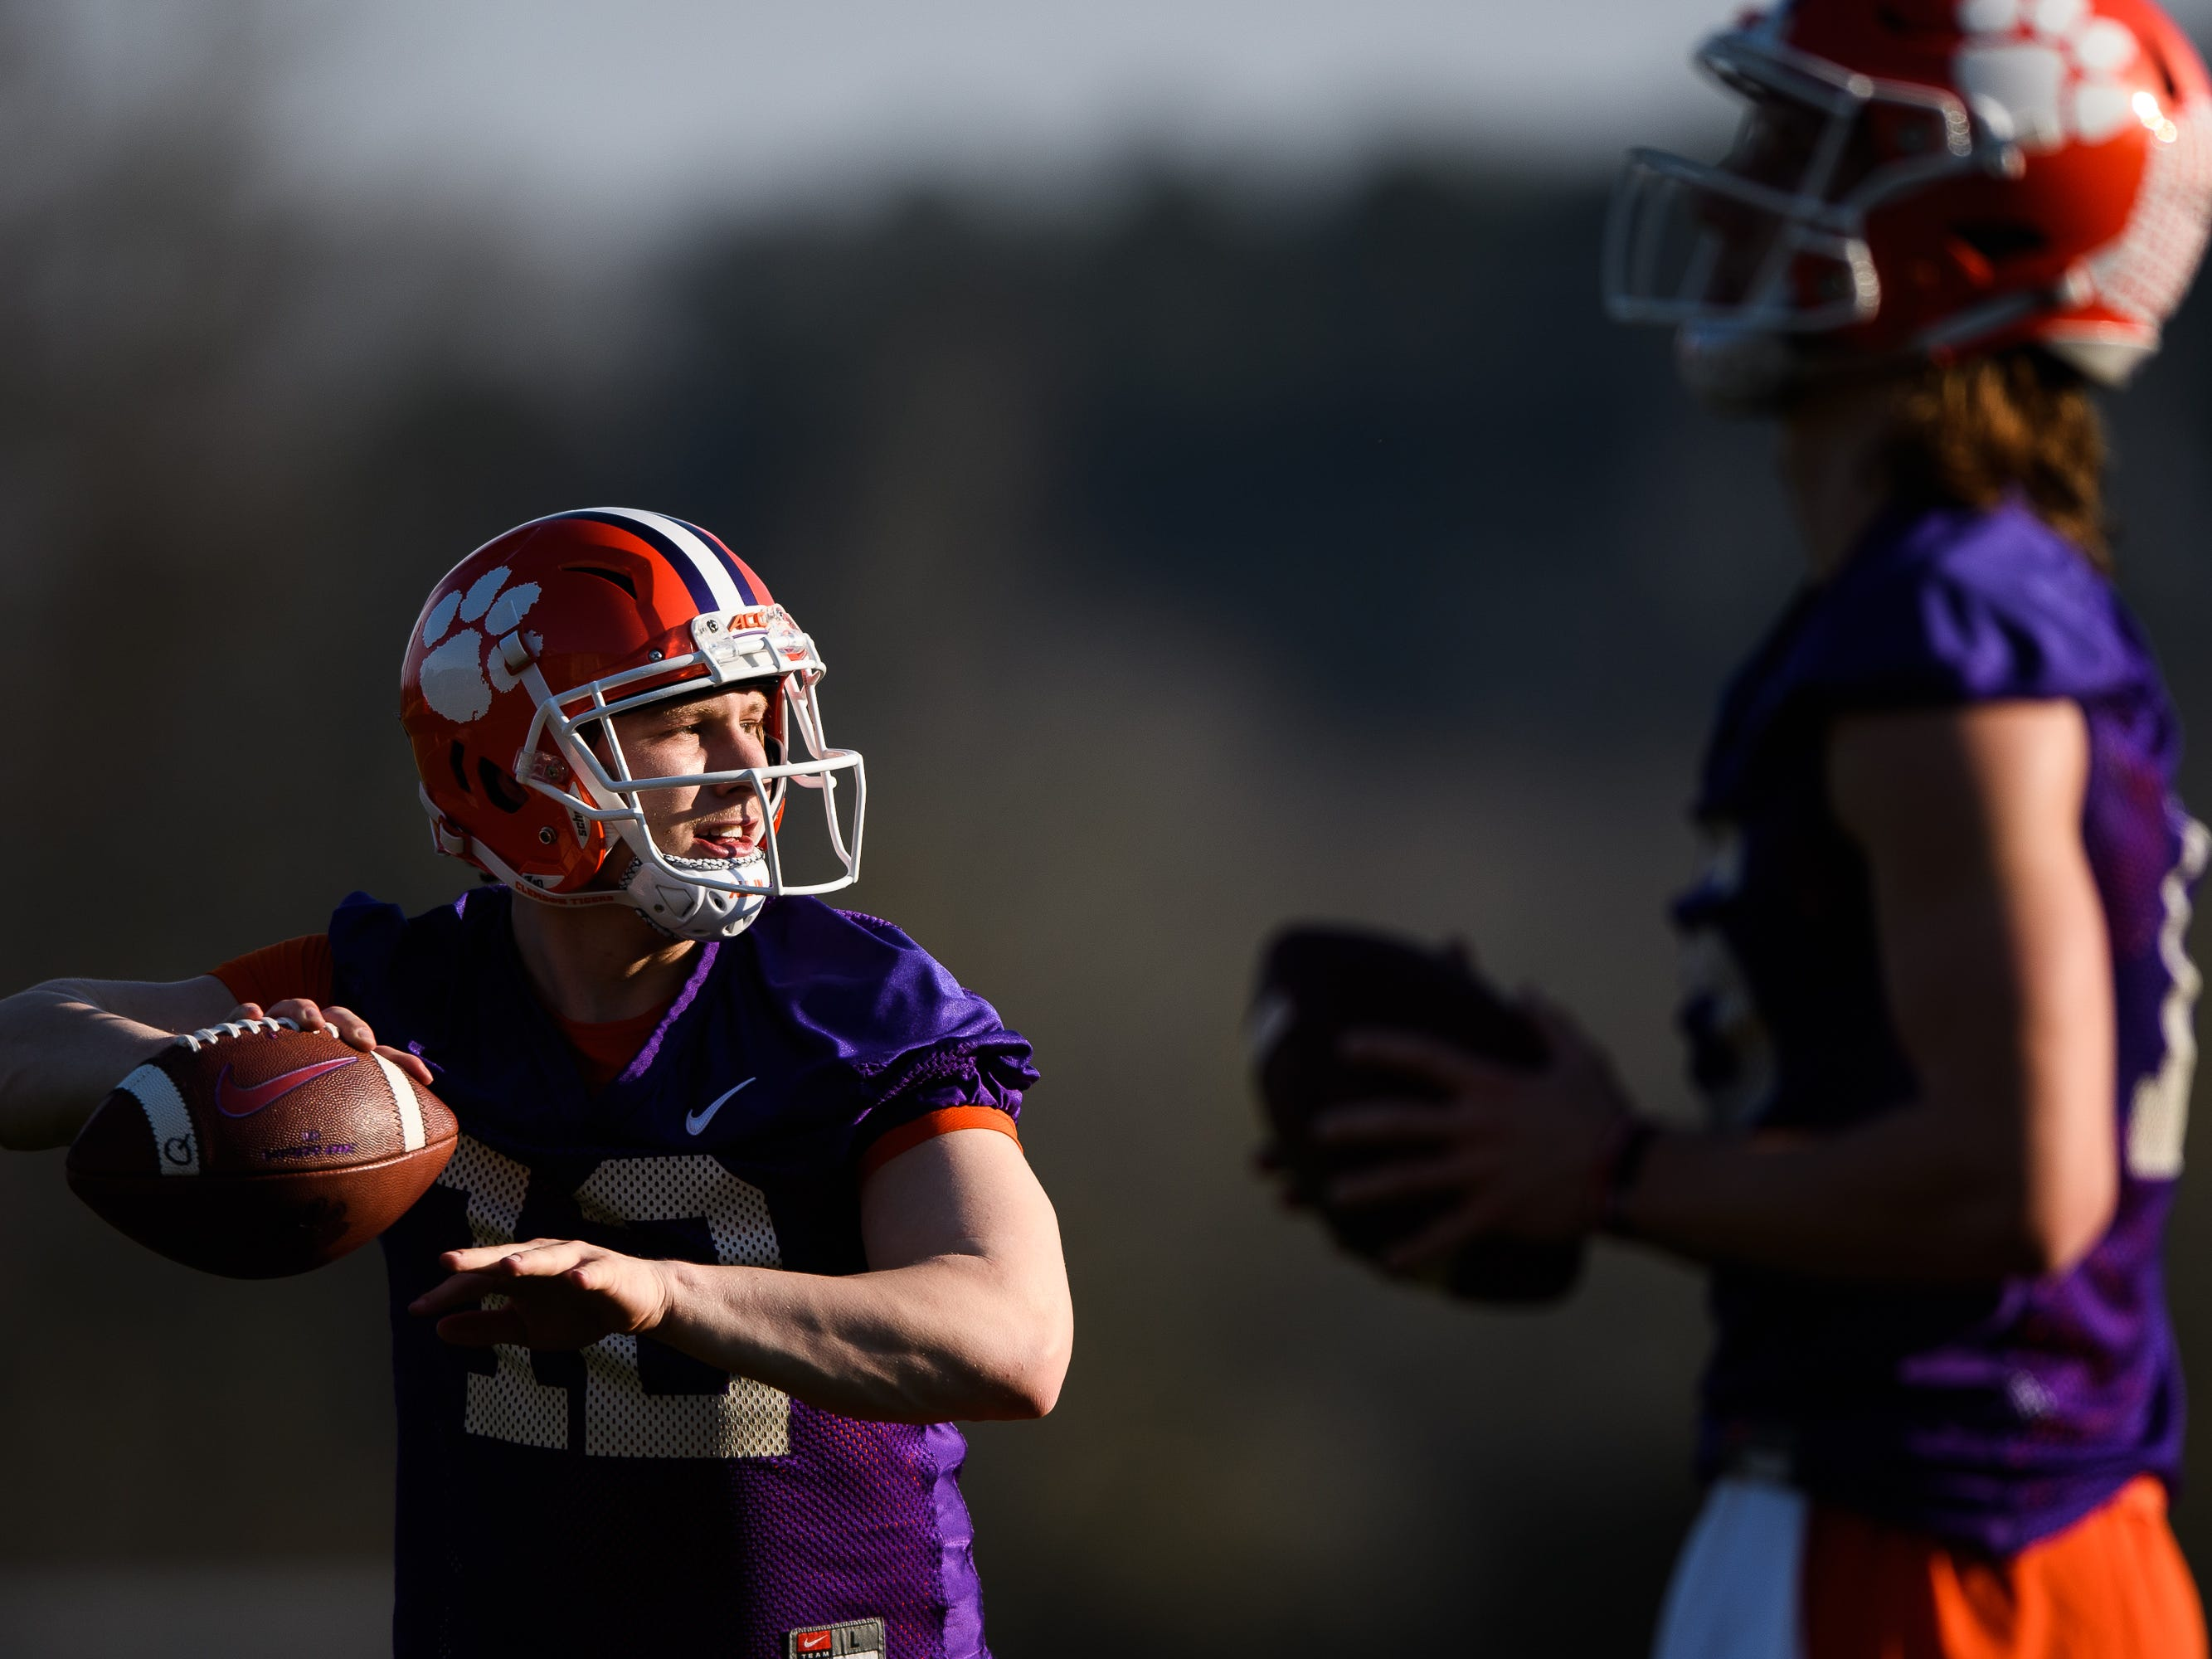 Clemson quarterback Ben Batson (12) throws the ball during practice at the Allen Reeves Football Complex on Wednesday, Feb. 27, 2019.